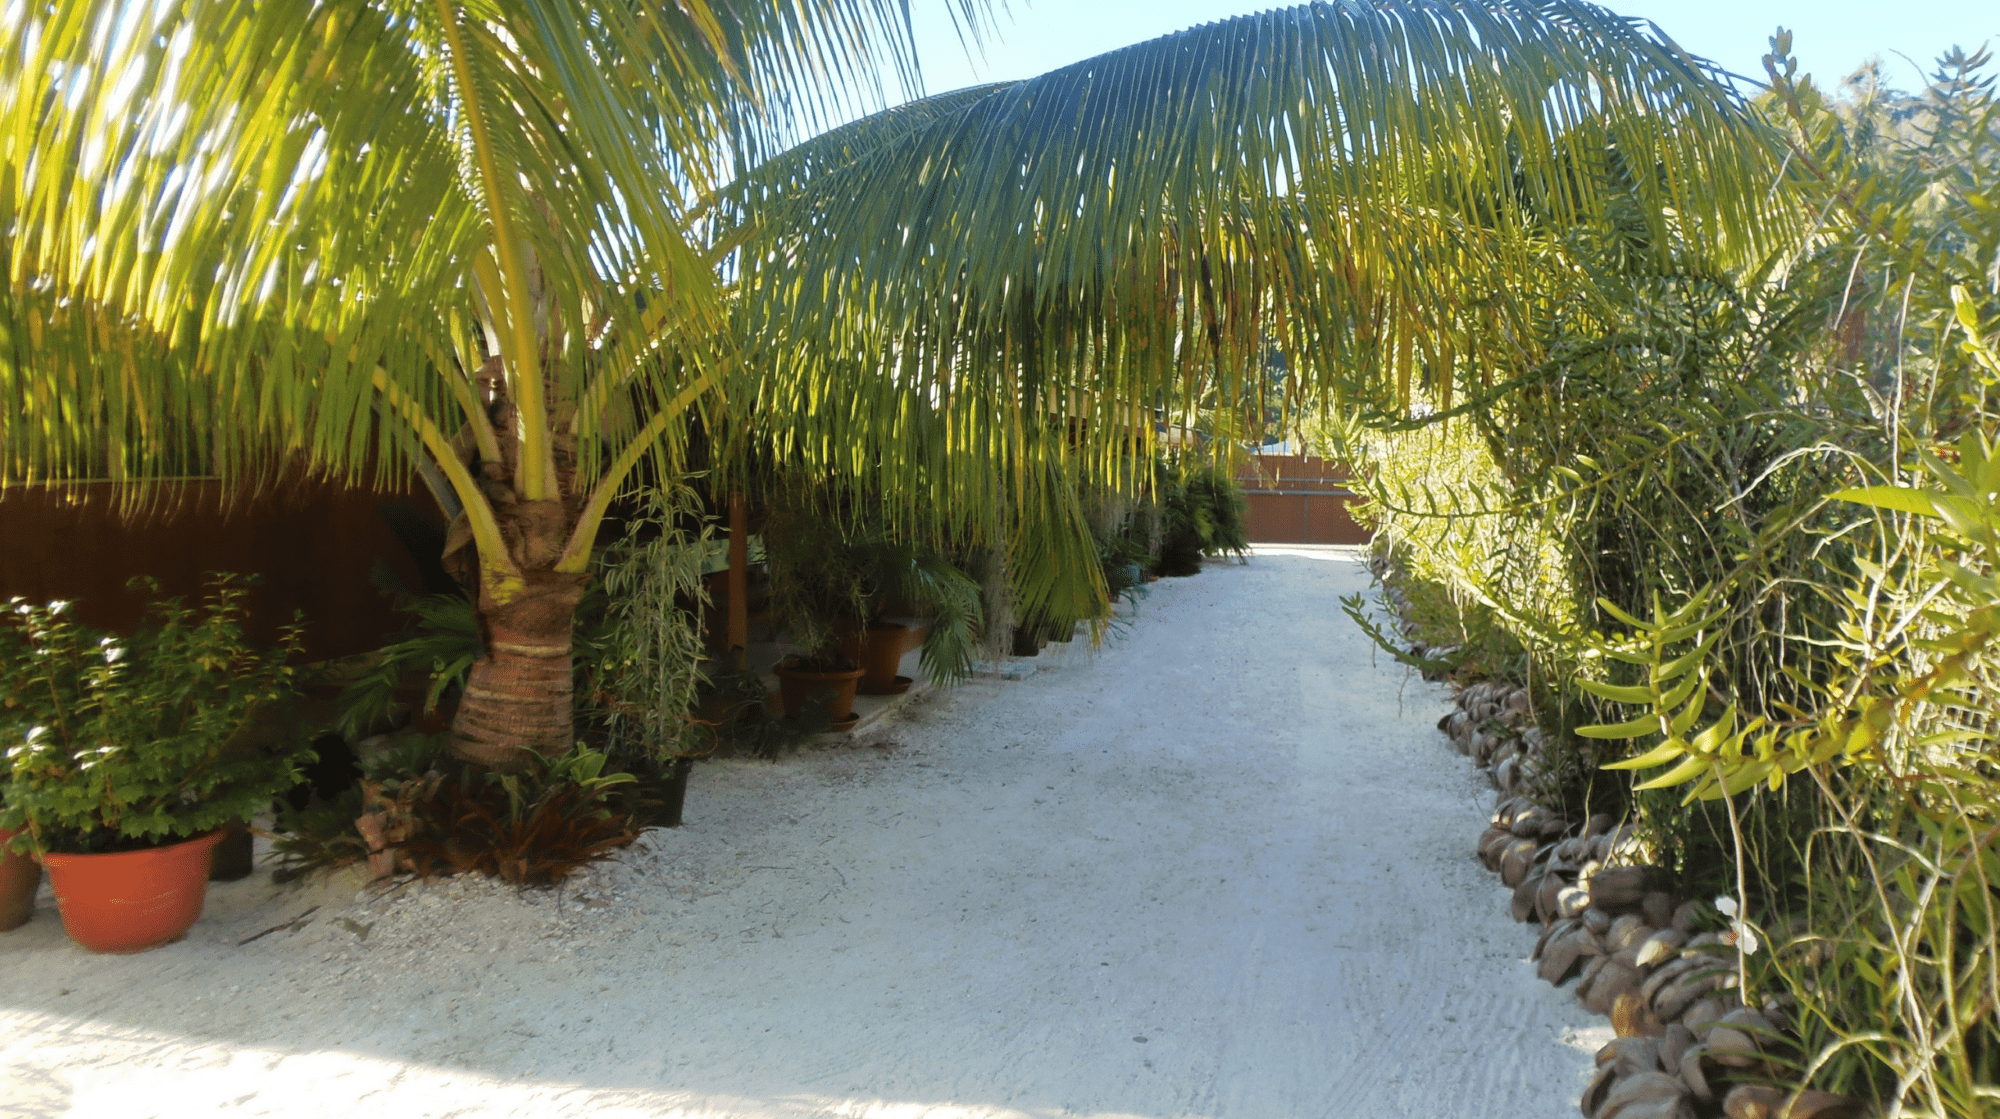 Fare ara huahine central path